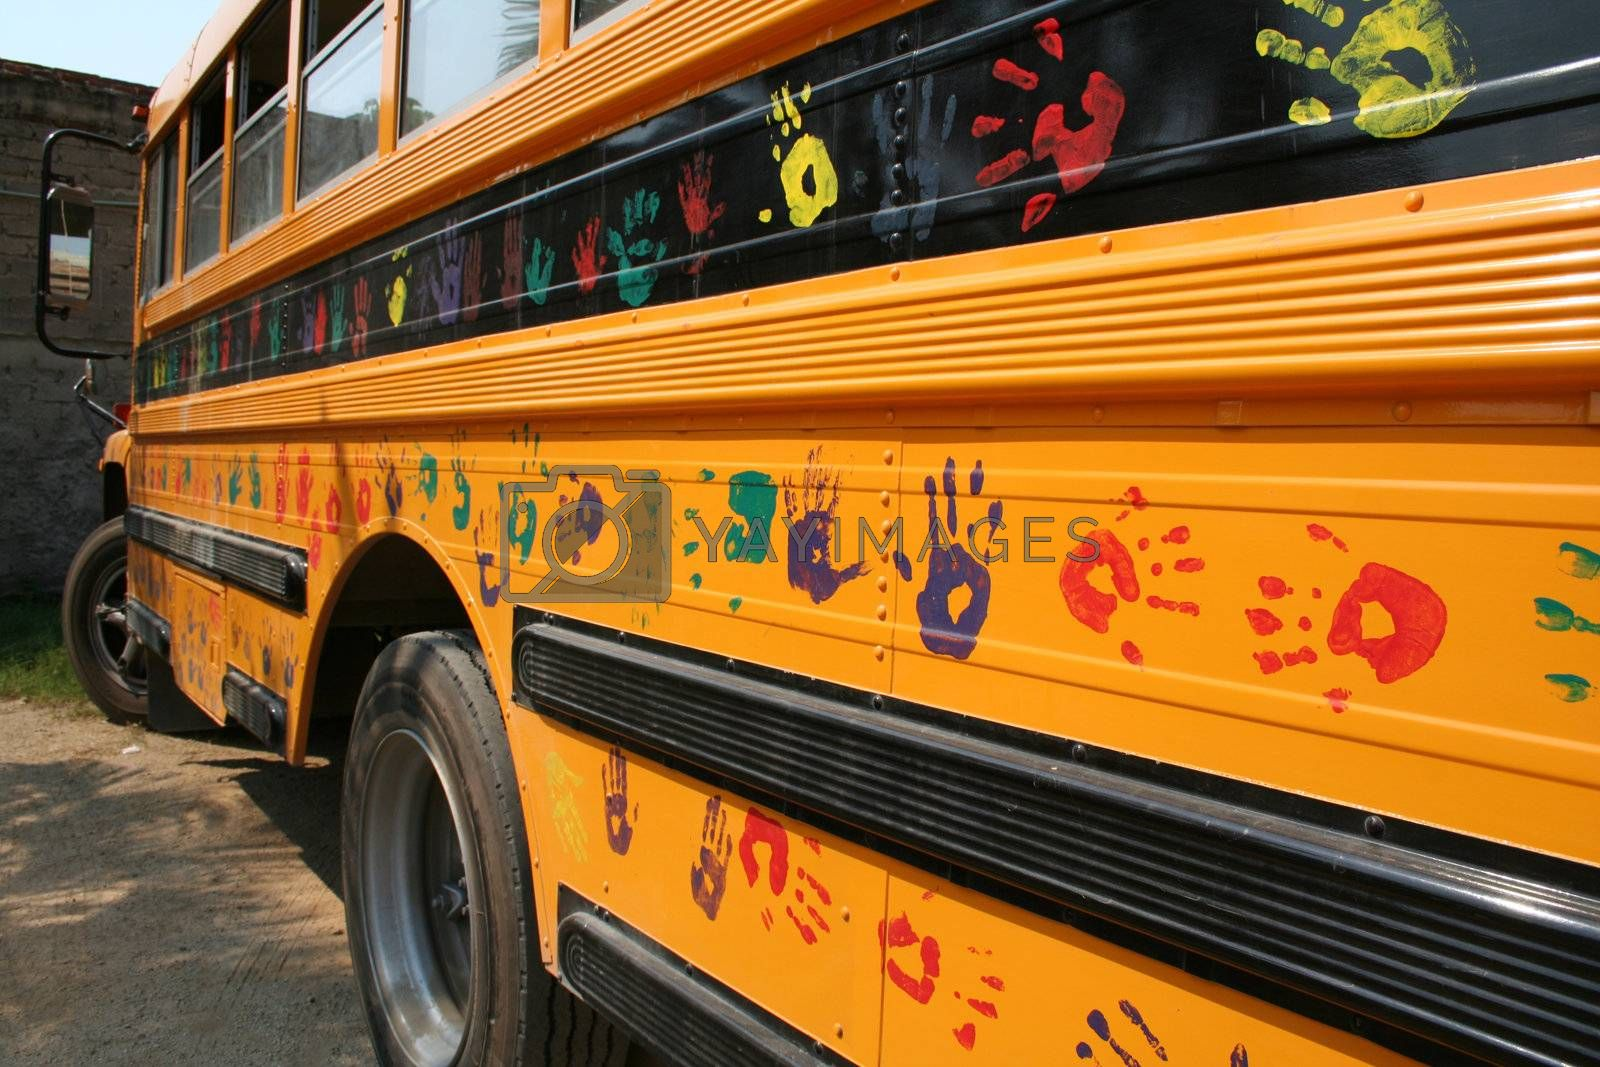 School bus with kids hands painted on the side